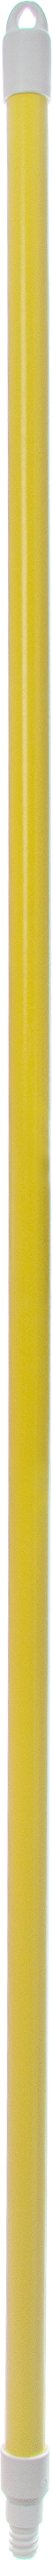 Carlisle 4022504 Sparta Commercial Fiberglass Handle with Self-Locking Flex-Tip, 60'', Yellow (Pack of 12) by Carlisle (Image #5)